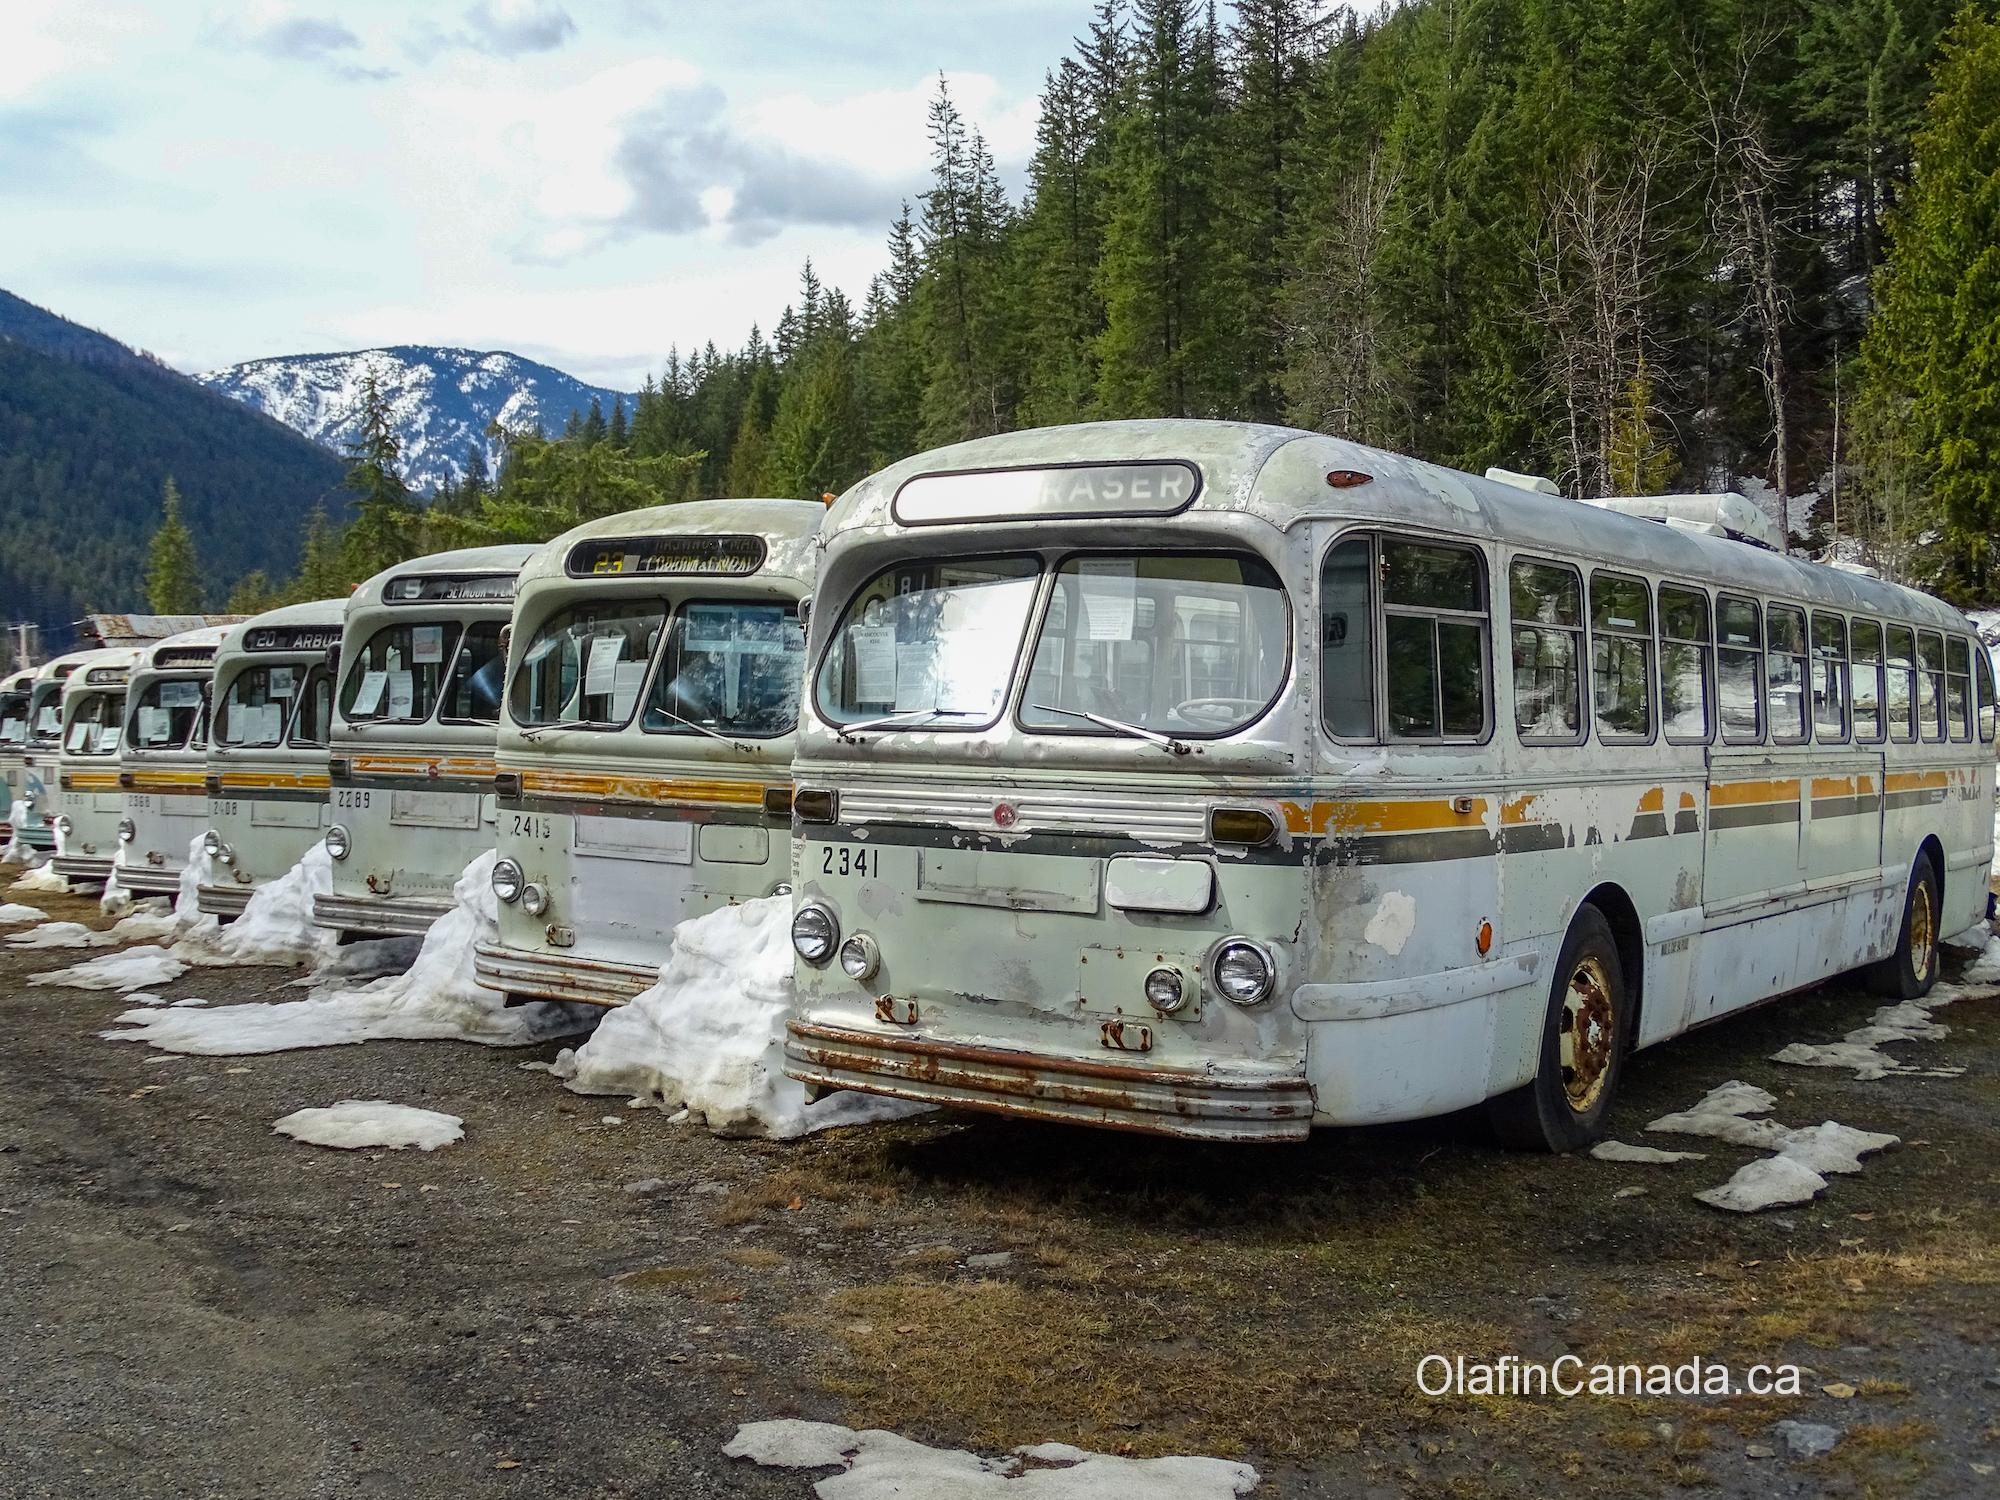 Vancouver busses from the fifties #olafincanada #britishcolumbia #discoverbc #abandonedbc #sandon #busses